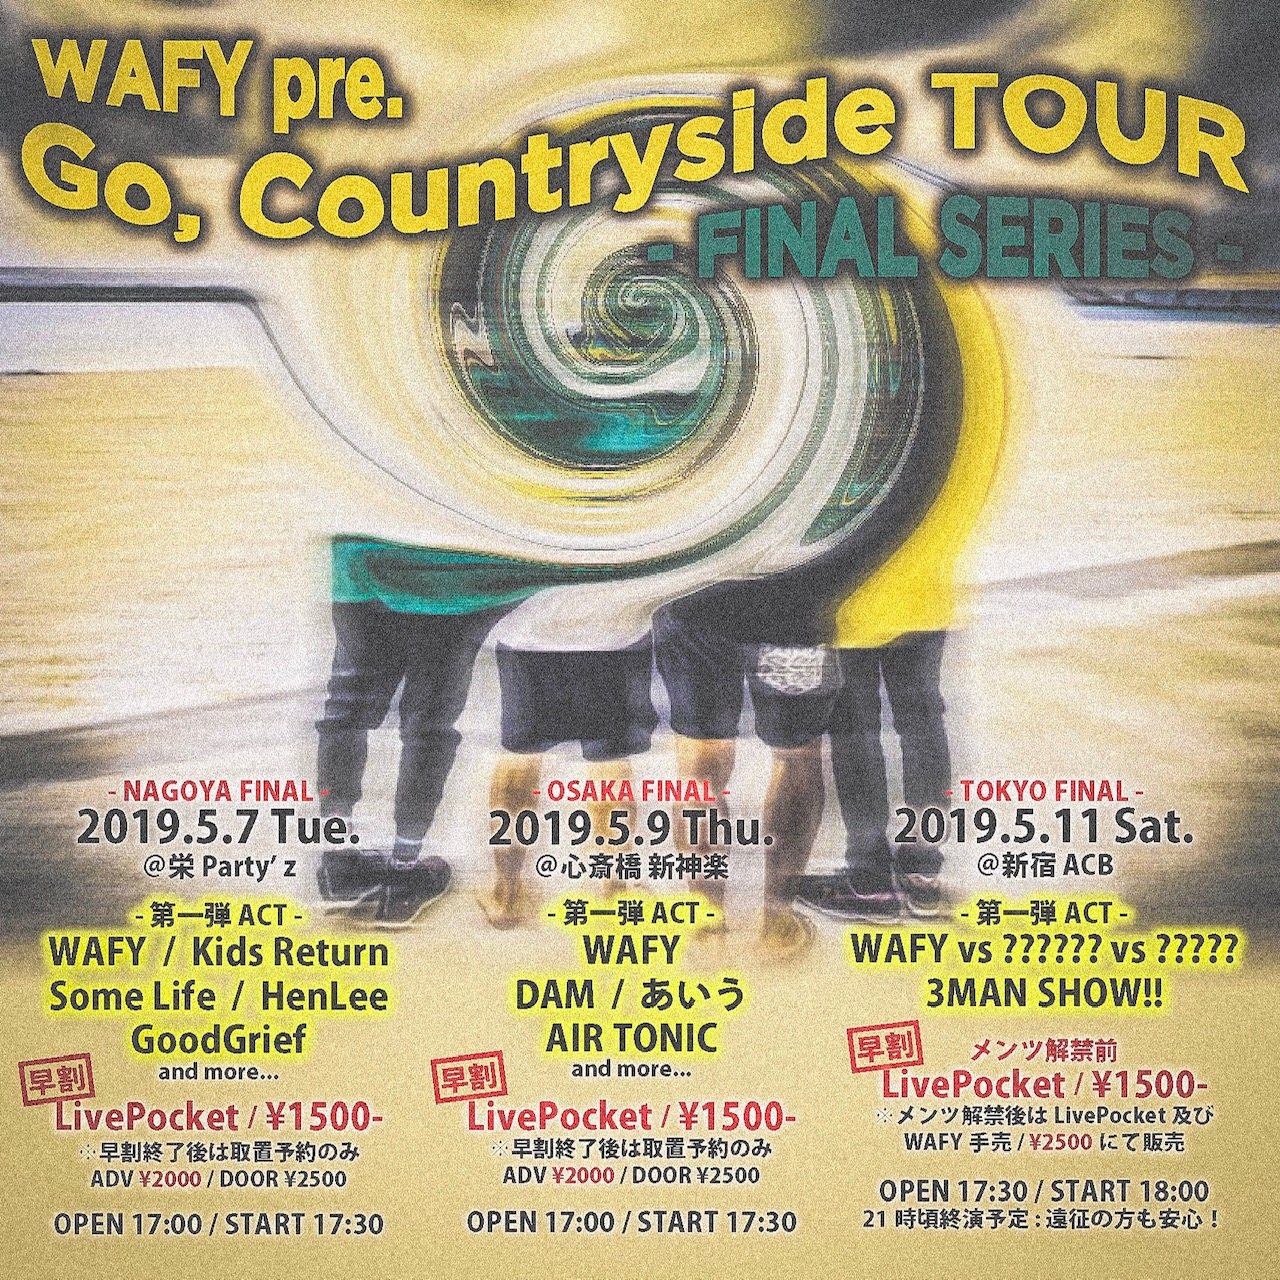 WAFY pre. Go,Countryside TOUR 2019 -OSAKA FINAL-